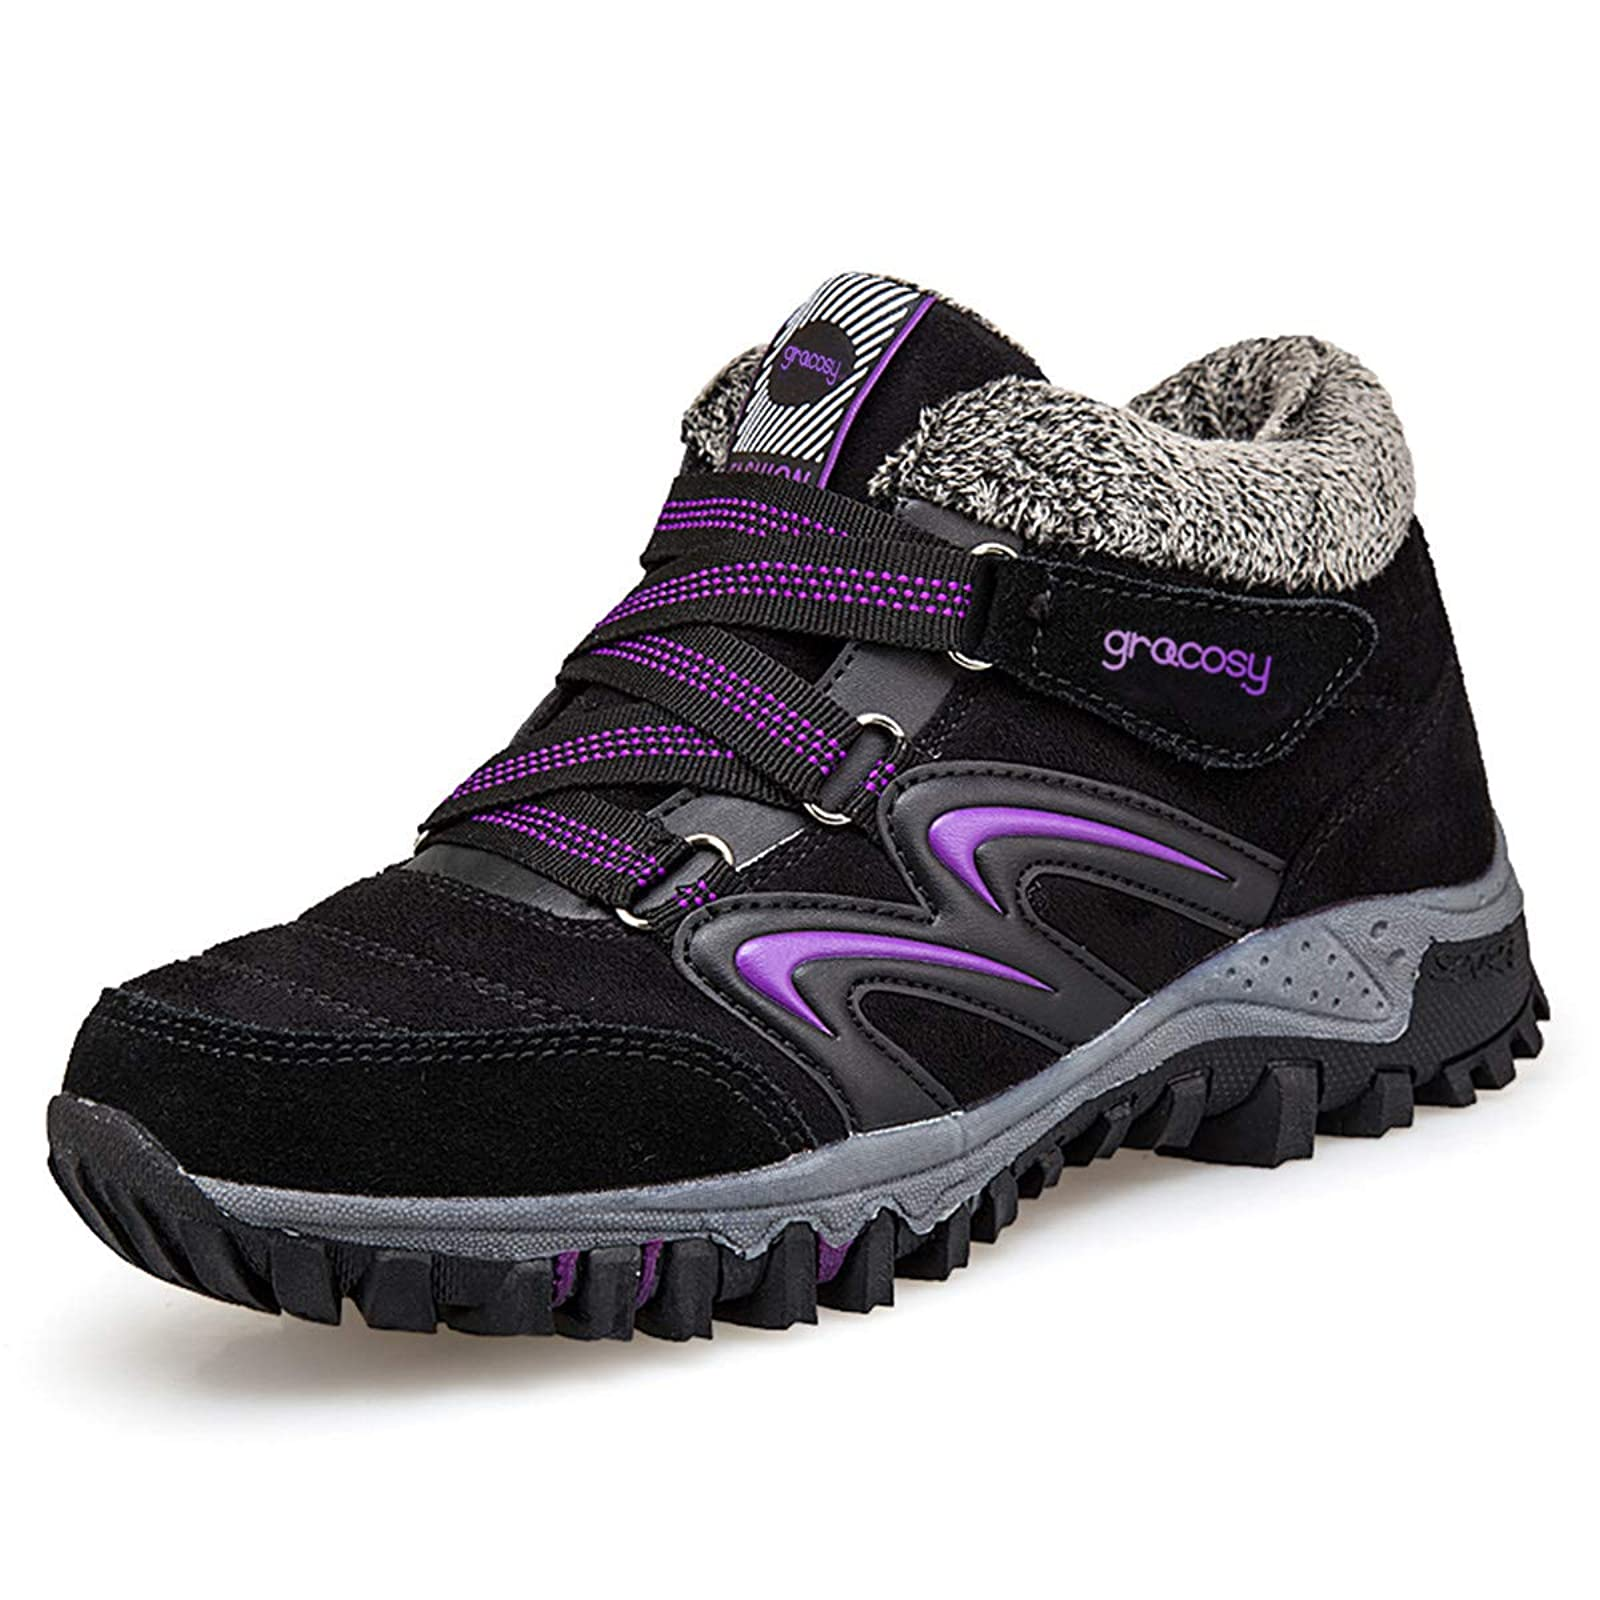 gracosy Women's Hiking Shoes High Top GRACOSYWERTY21416 - 2